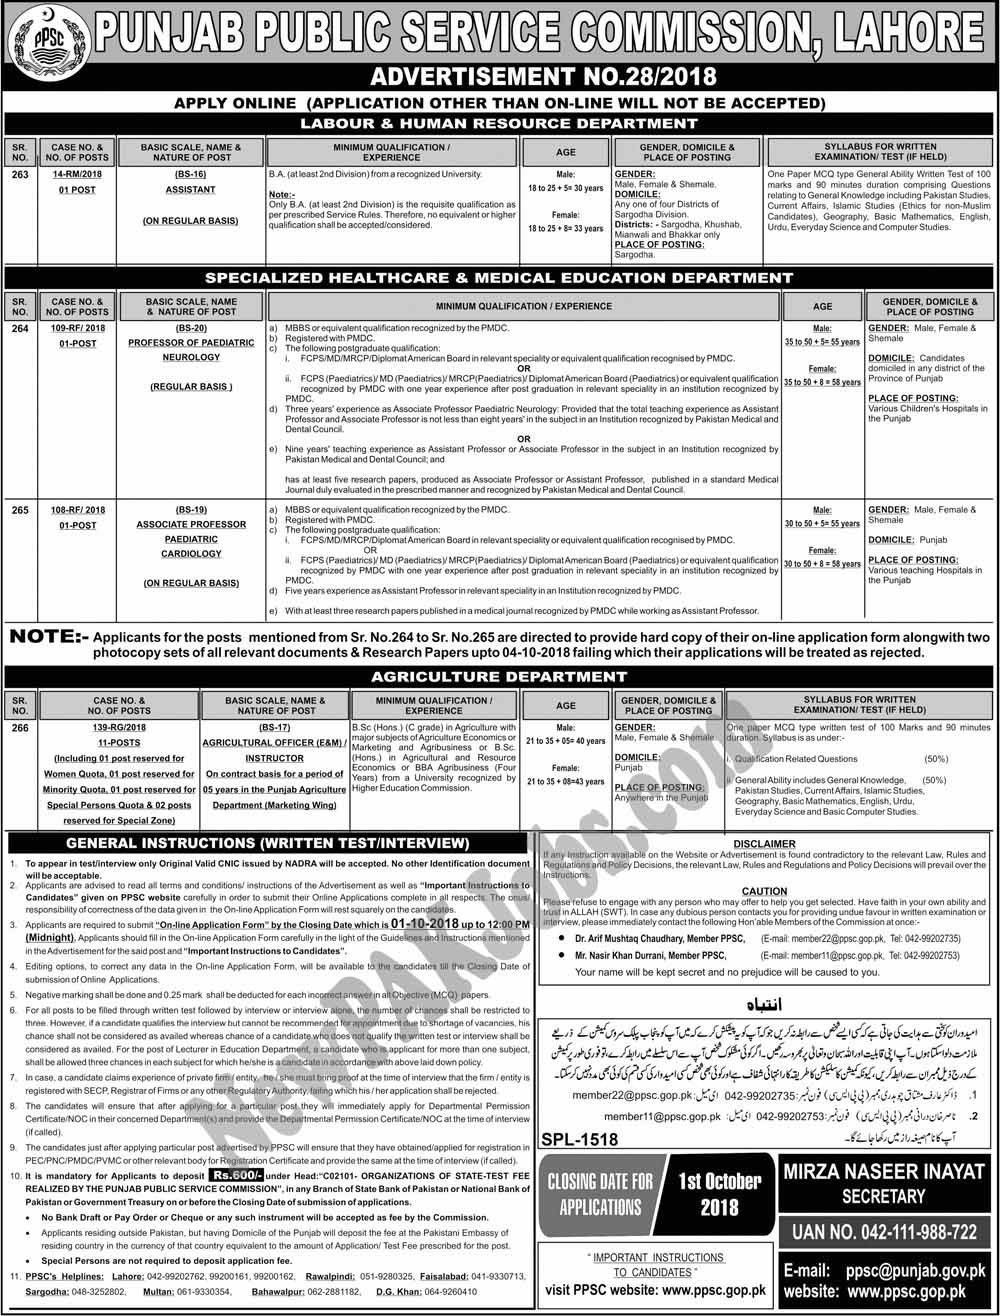 Fresh PPSC Jobs Advertisement No 28/2018